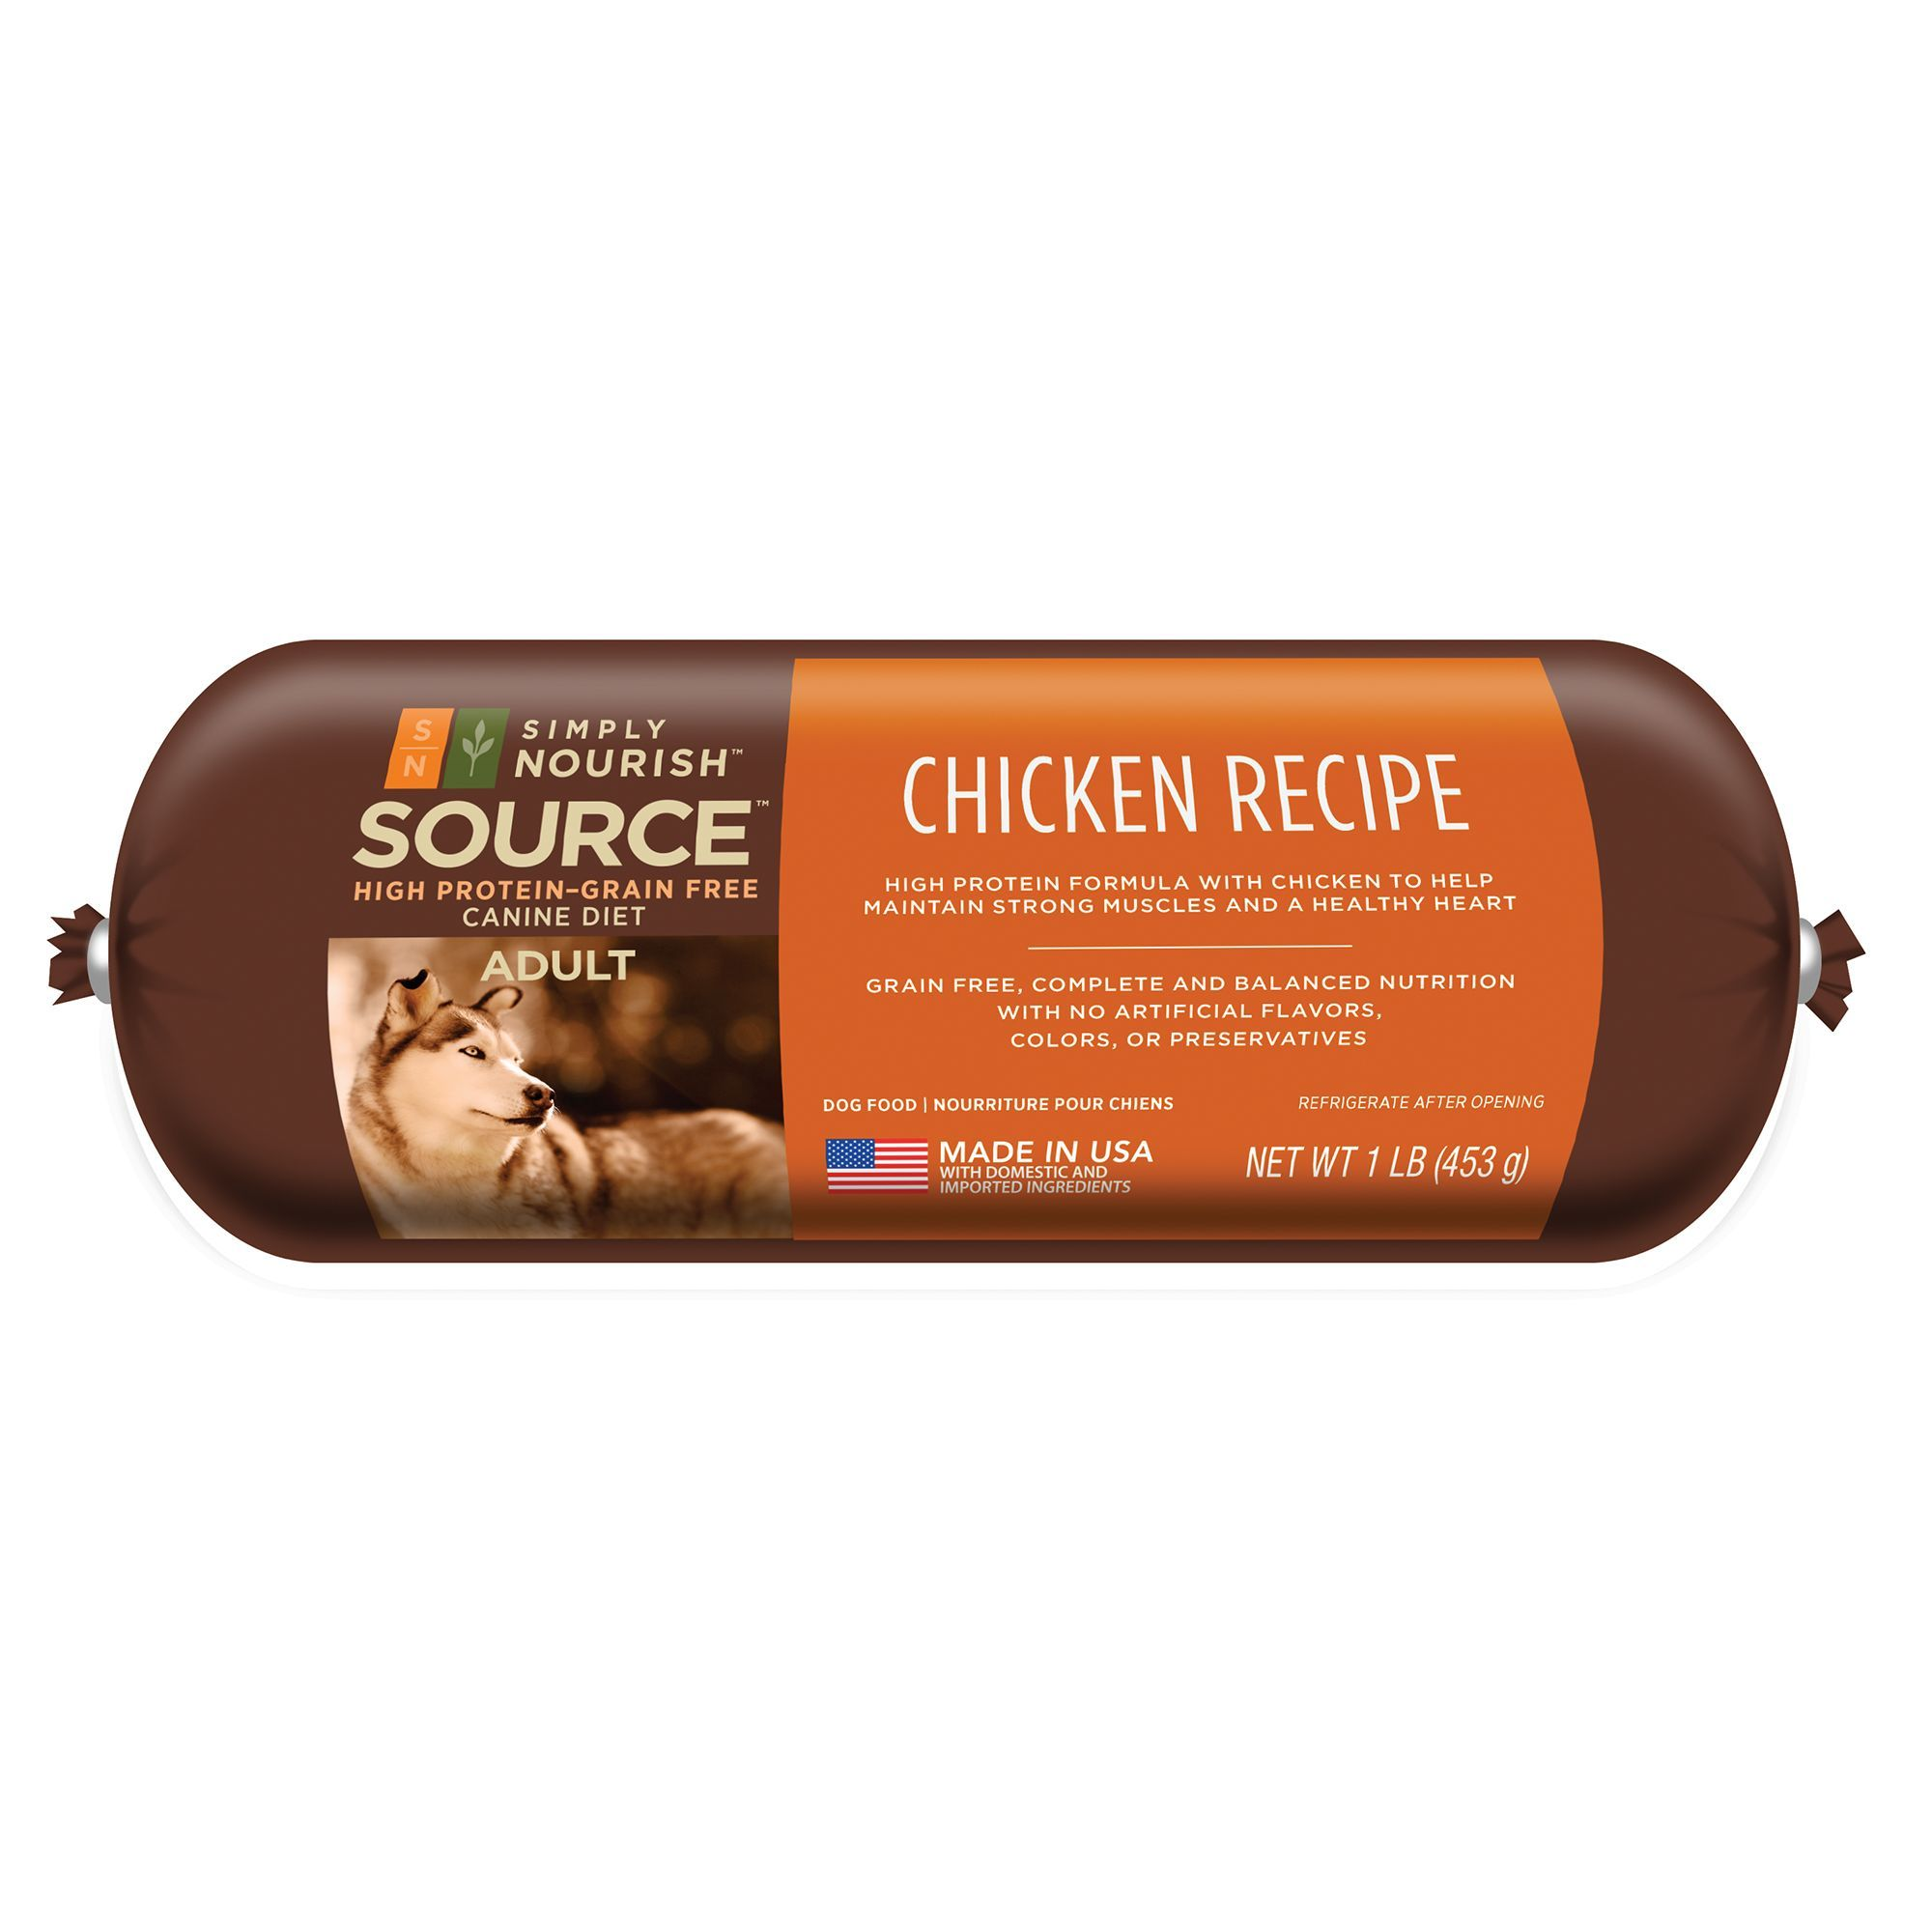 Simply Nourish Source Adult Dog Food Roll Natural Grain Free